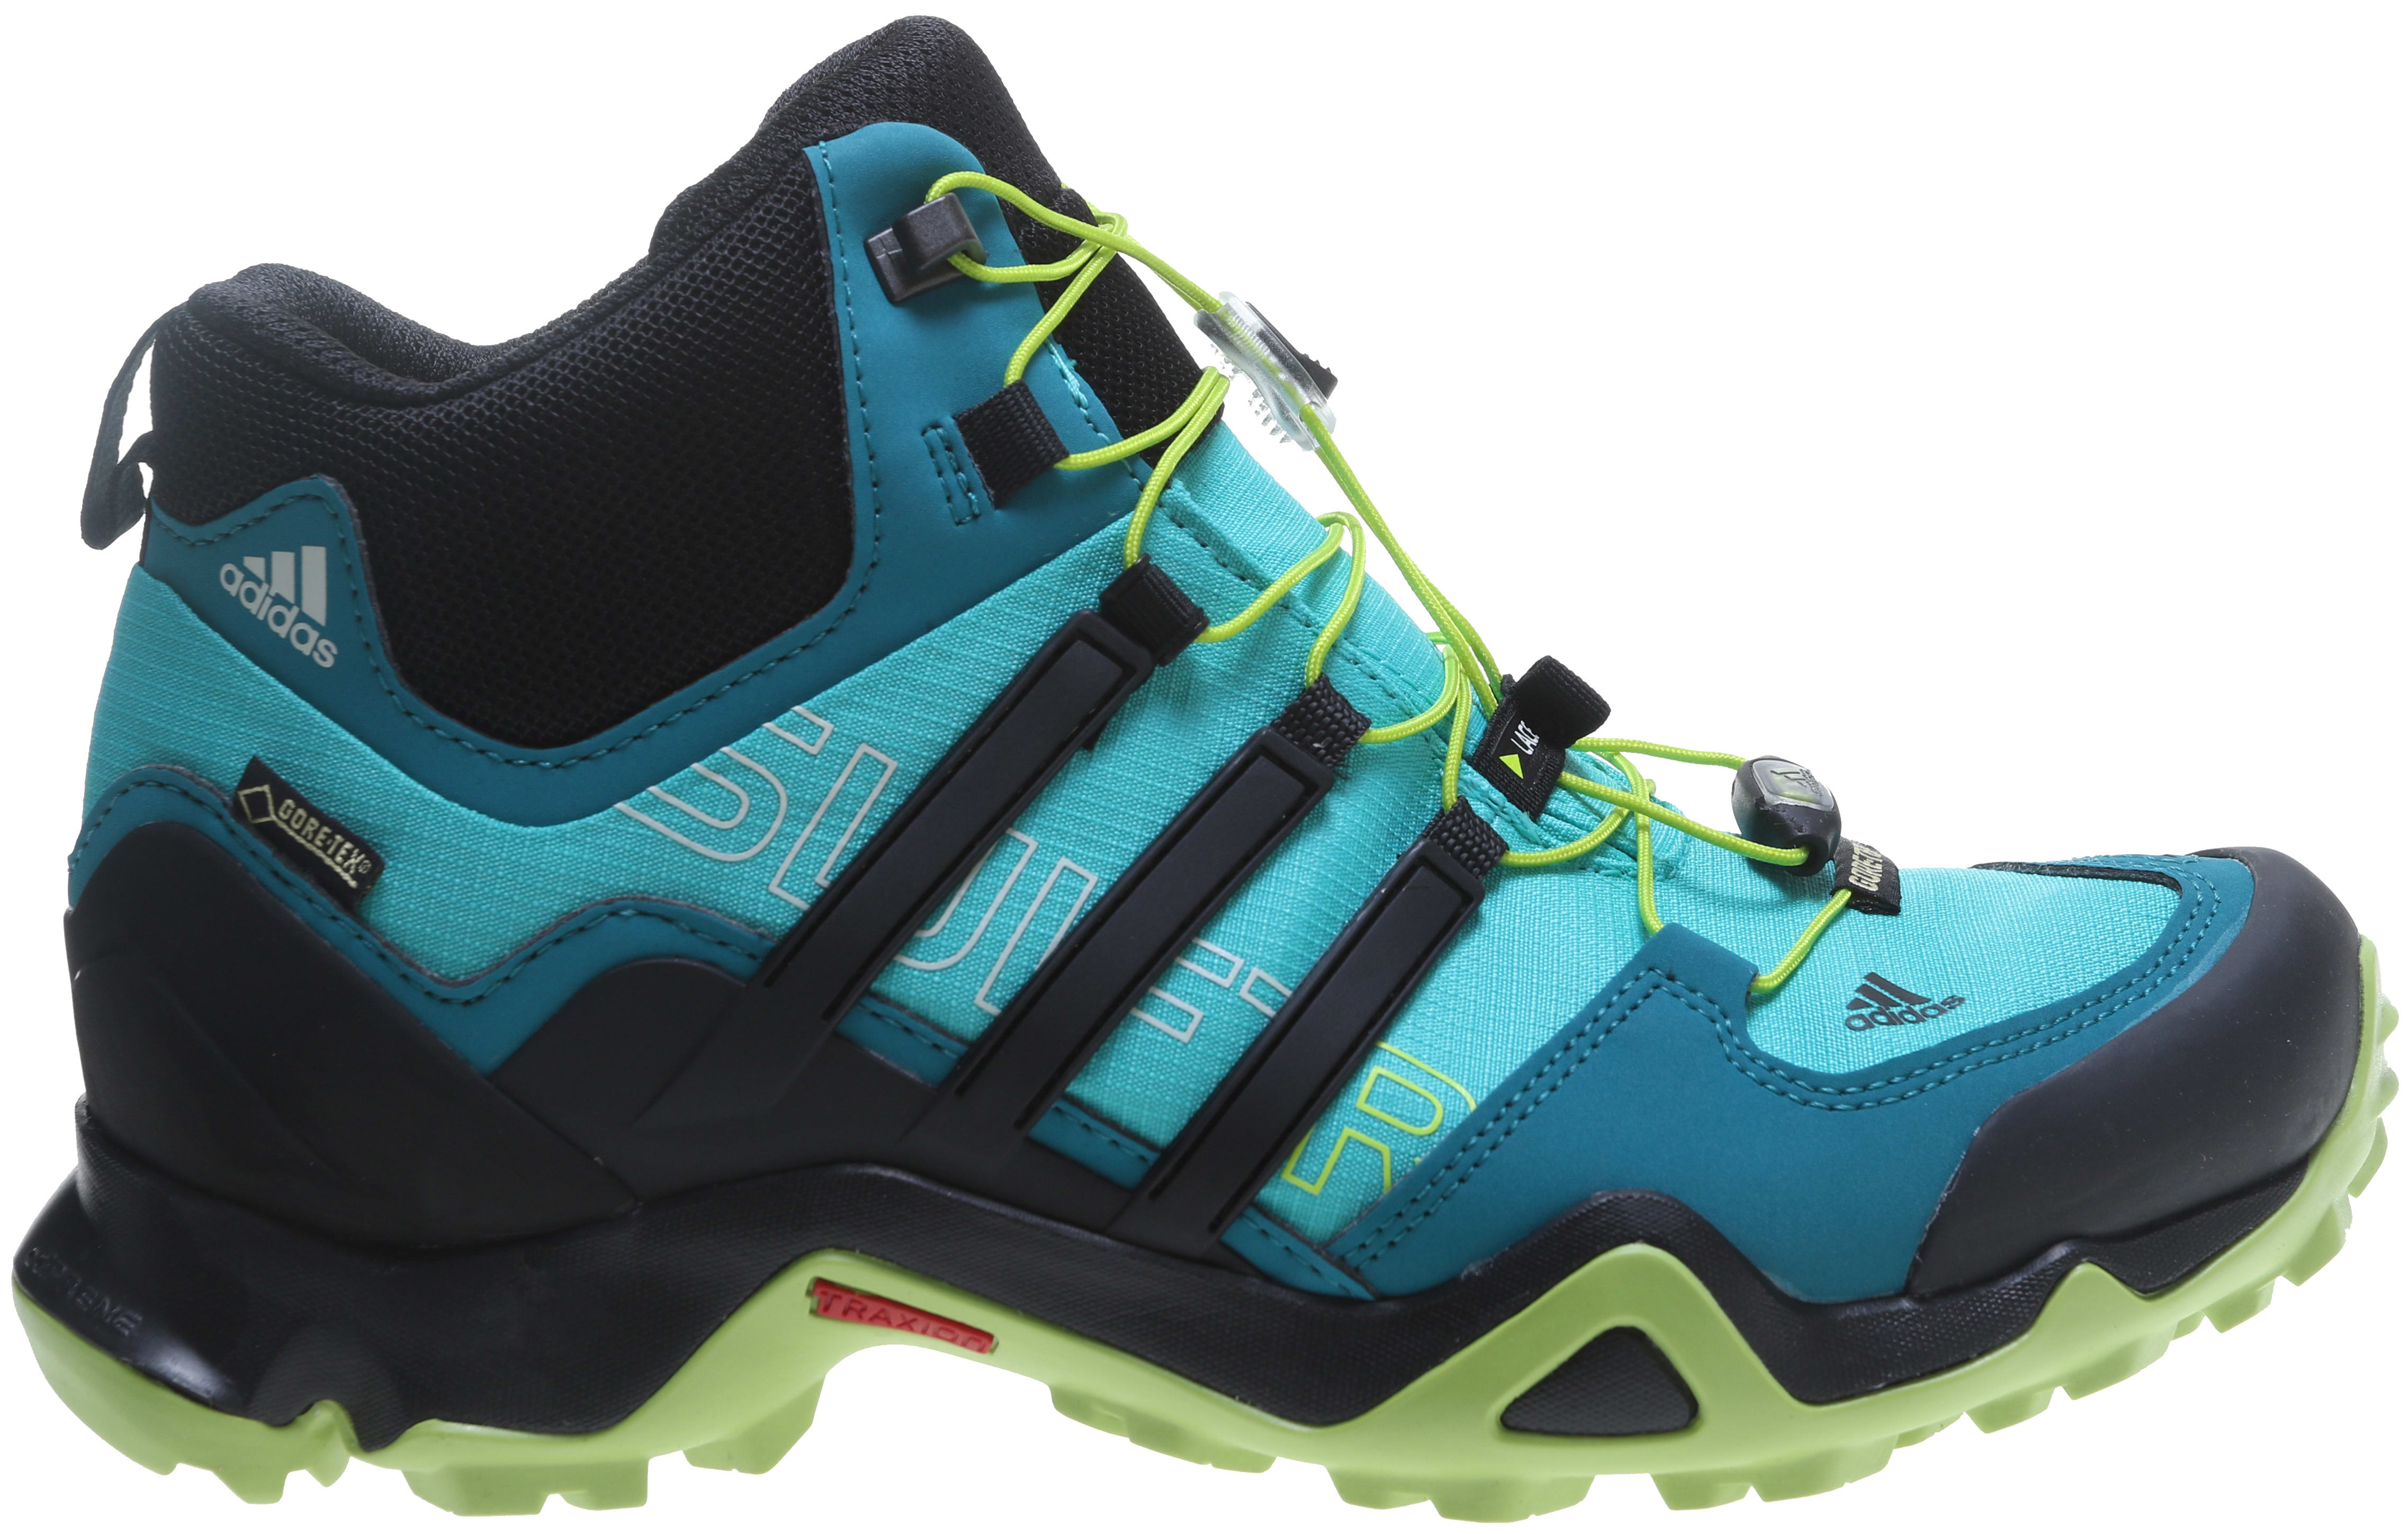 sports shoes a5a46 29d47 Adidas Terrex Swift R Mid GTX Hiking Boots - thumbnail 1